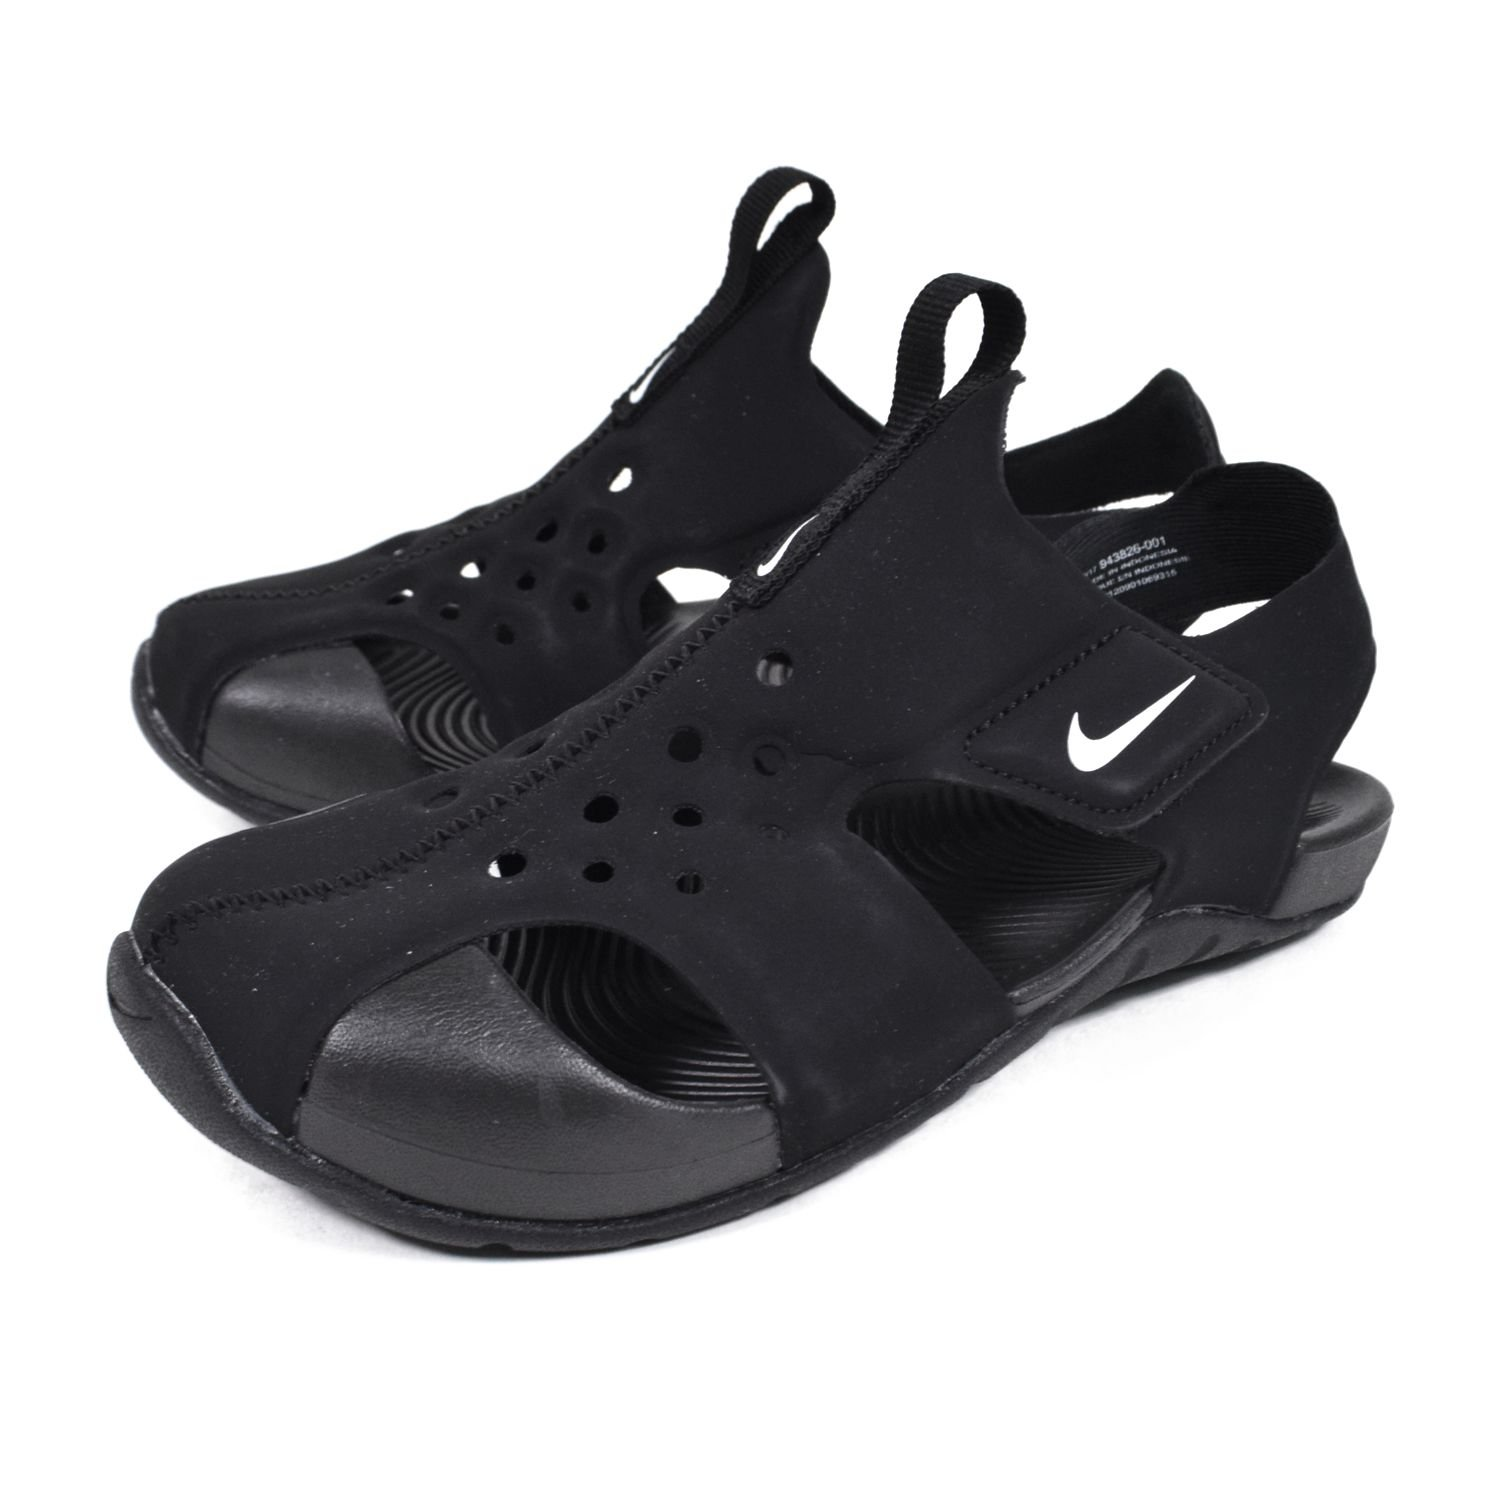 9098fdaadbe1 Nike Sandals - Sunray Protect 2 (PS) Black White Size  32  Amazon.co.uk   Shoes   Bags